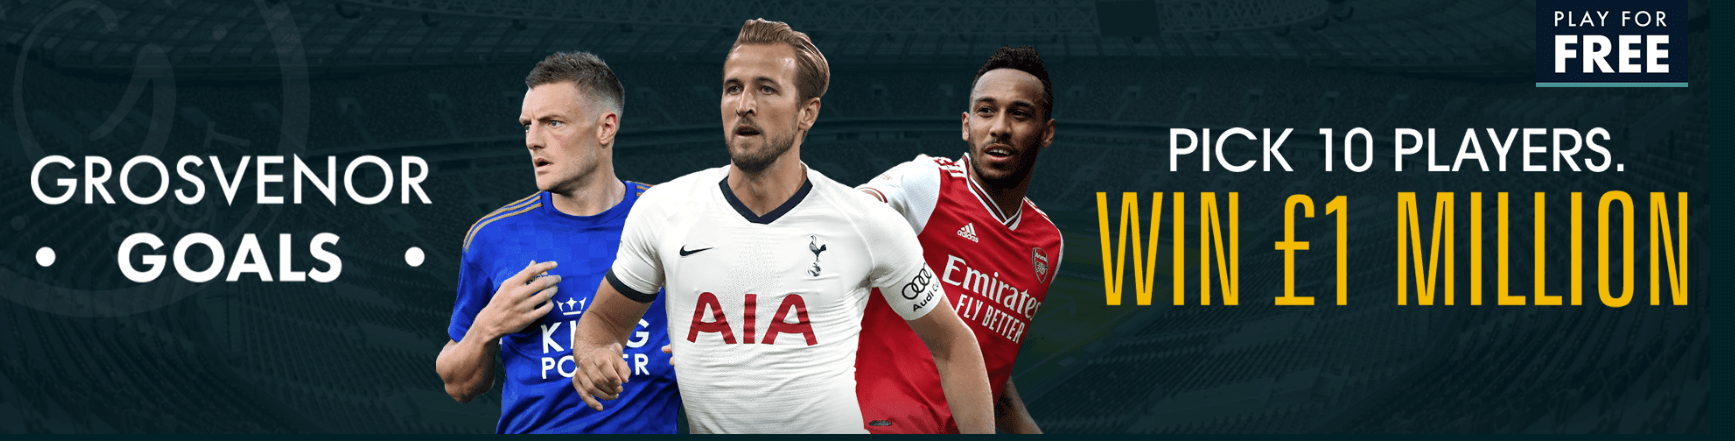 Grosvenor Goals Play for Free - Pick 10 Players Win £1 Million